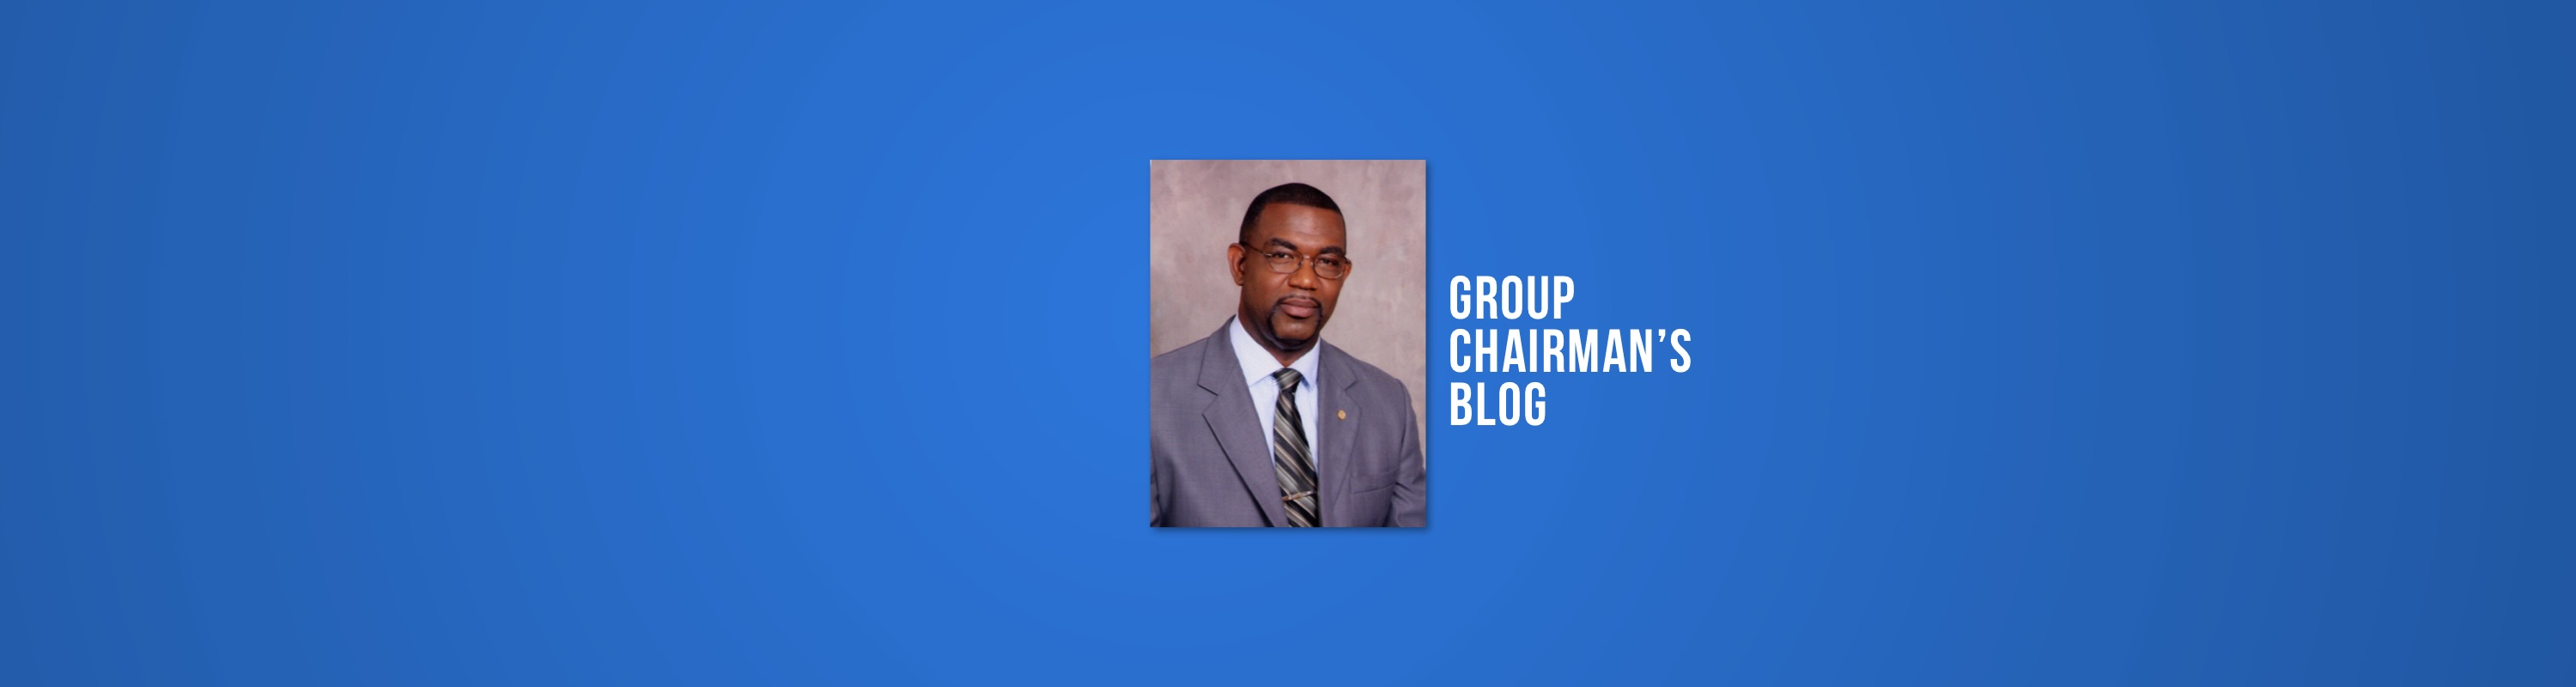 Group Chairman's Blog